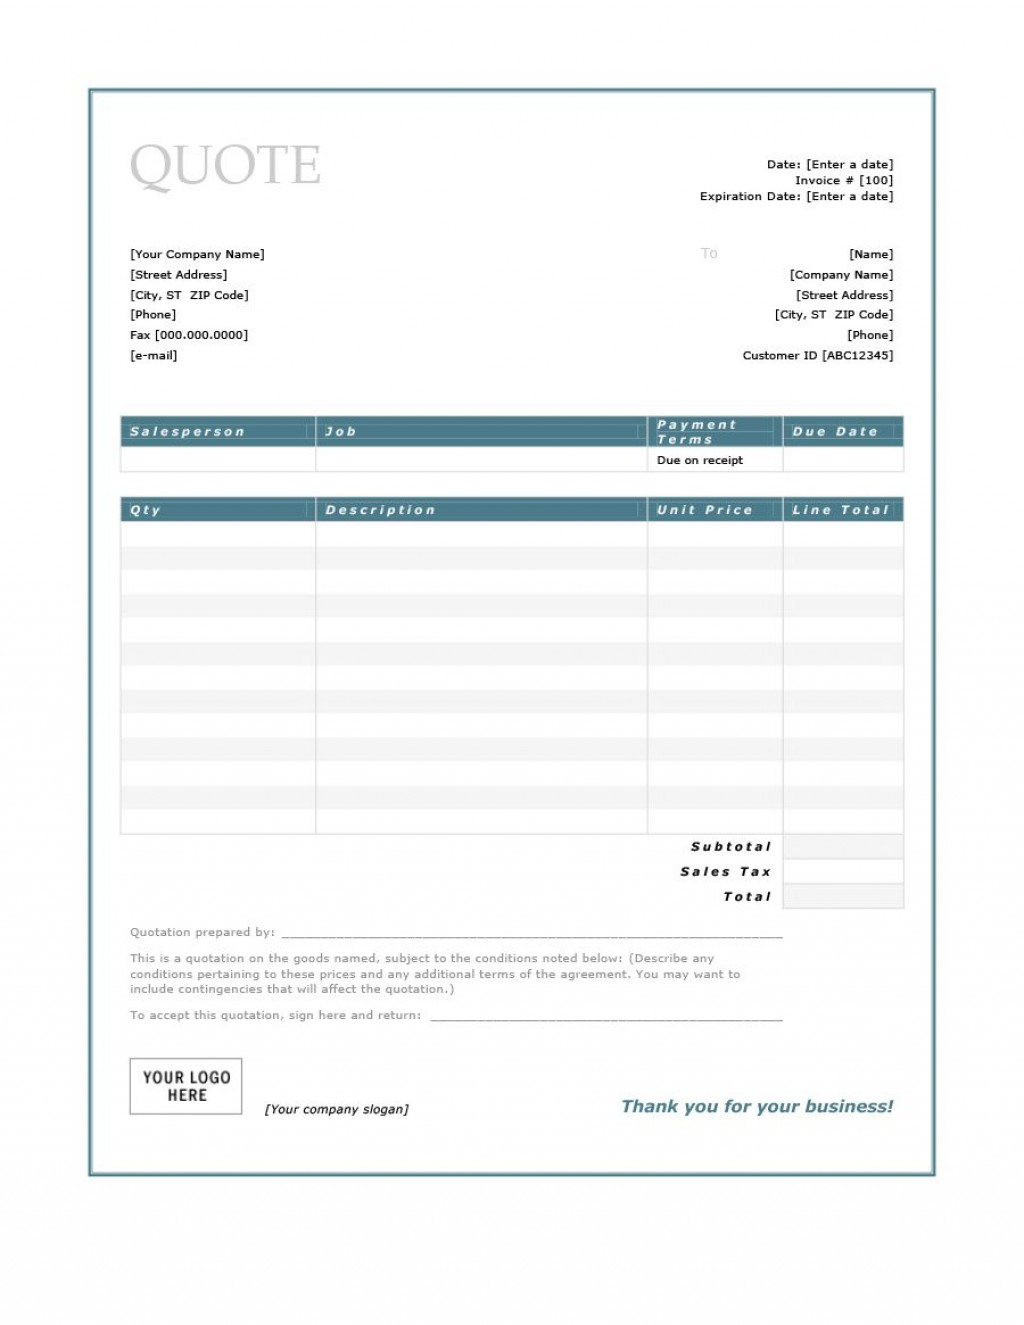 008 Remarkable Free Estimate Template Word Highest Clarity  Microsoft ContractorLarge